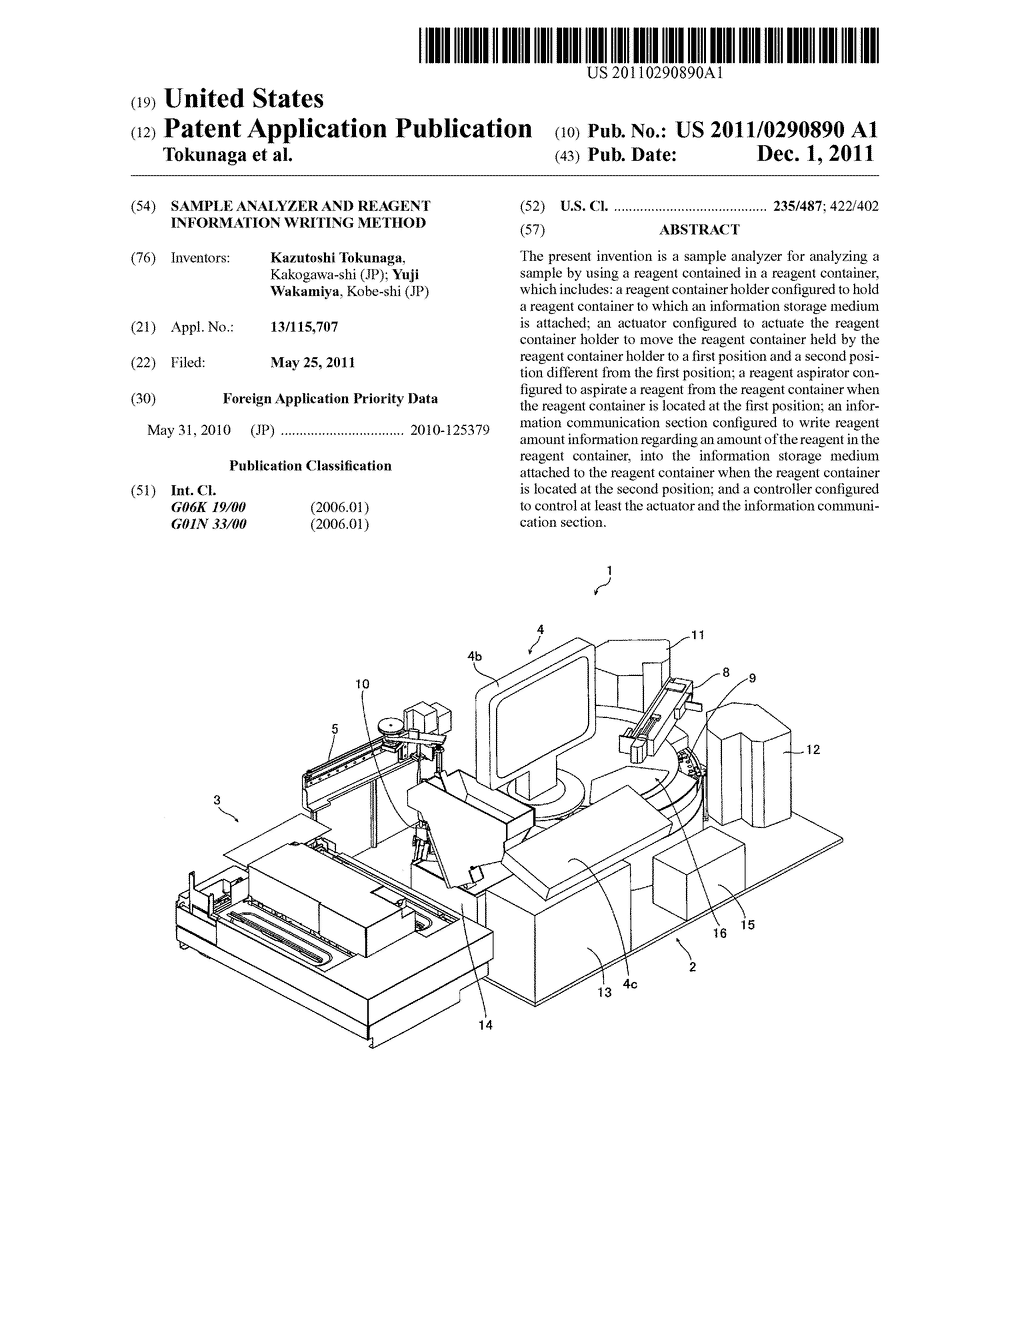 SAMPLE ANALYZER AND REAGENT INFORMATION WRITING METHOD - diagram, schematic, and image 01